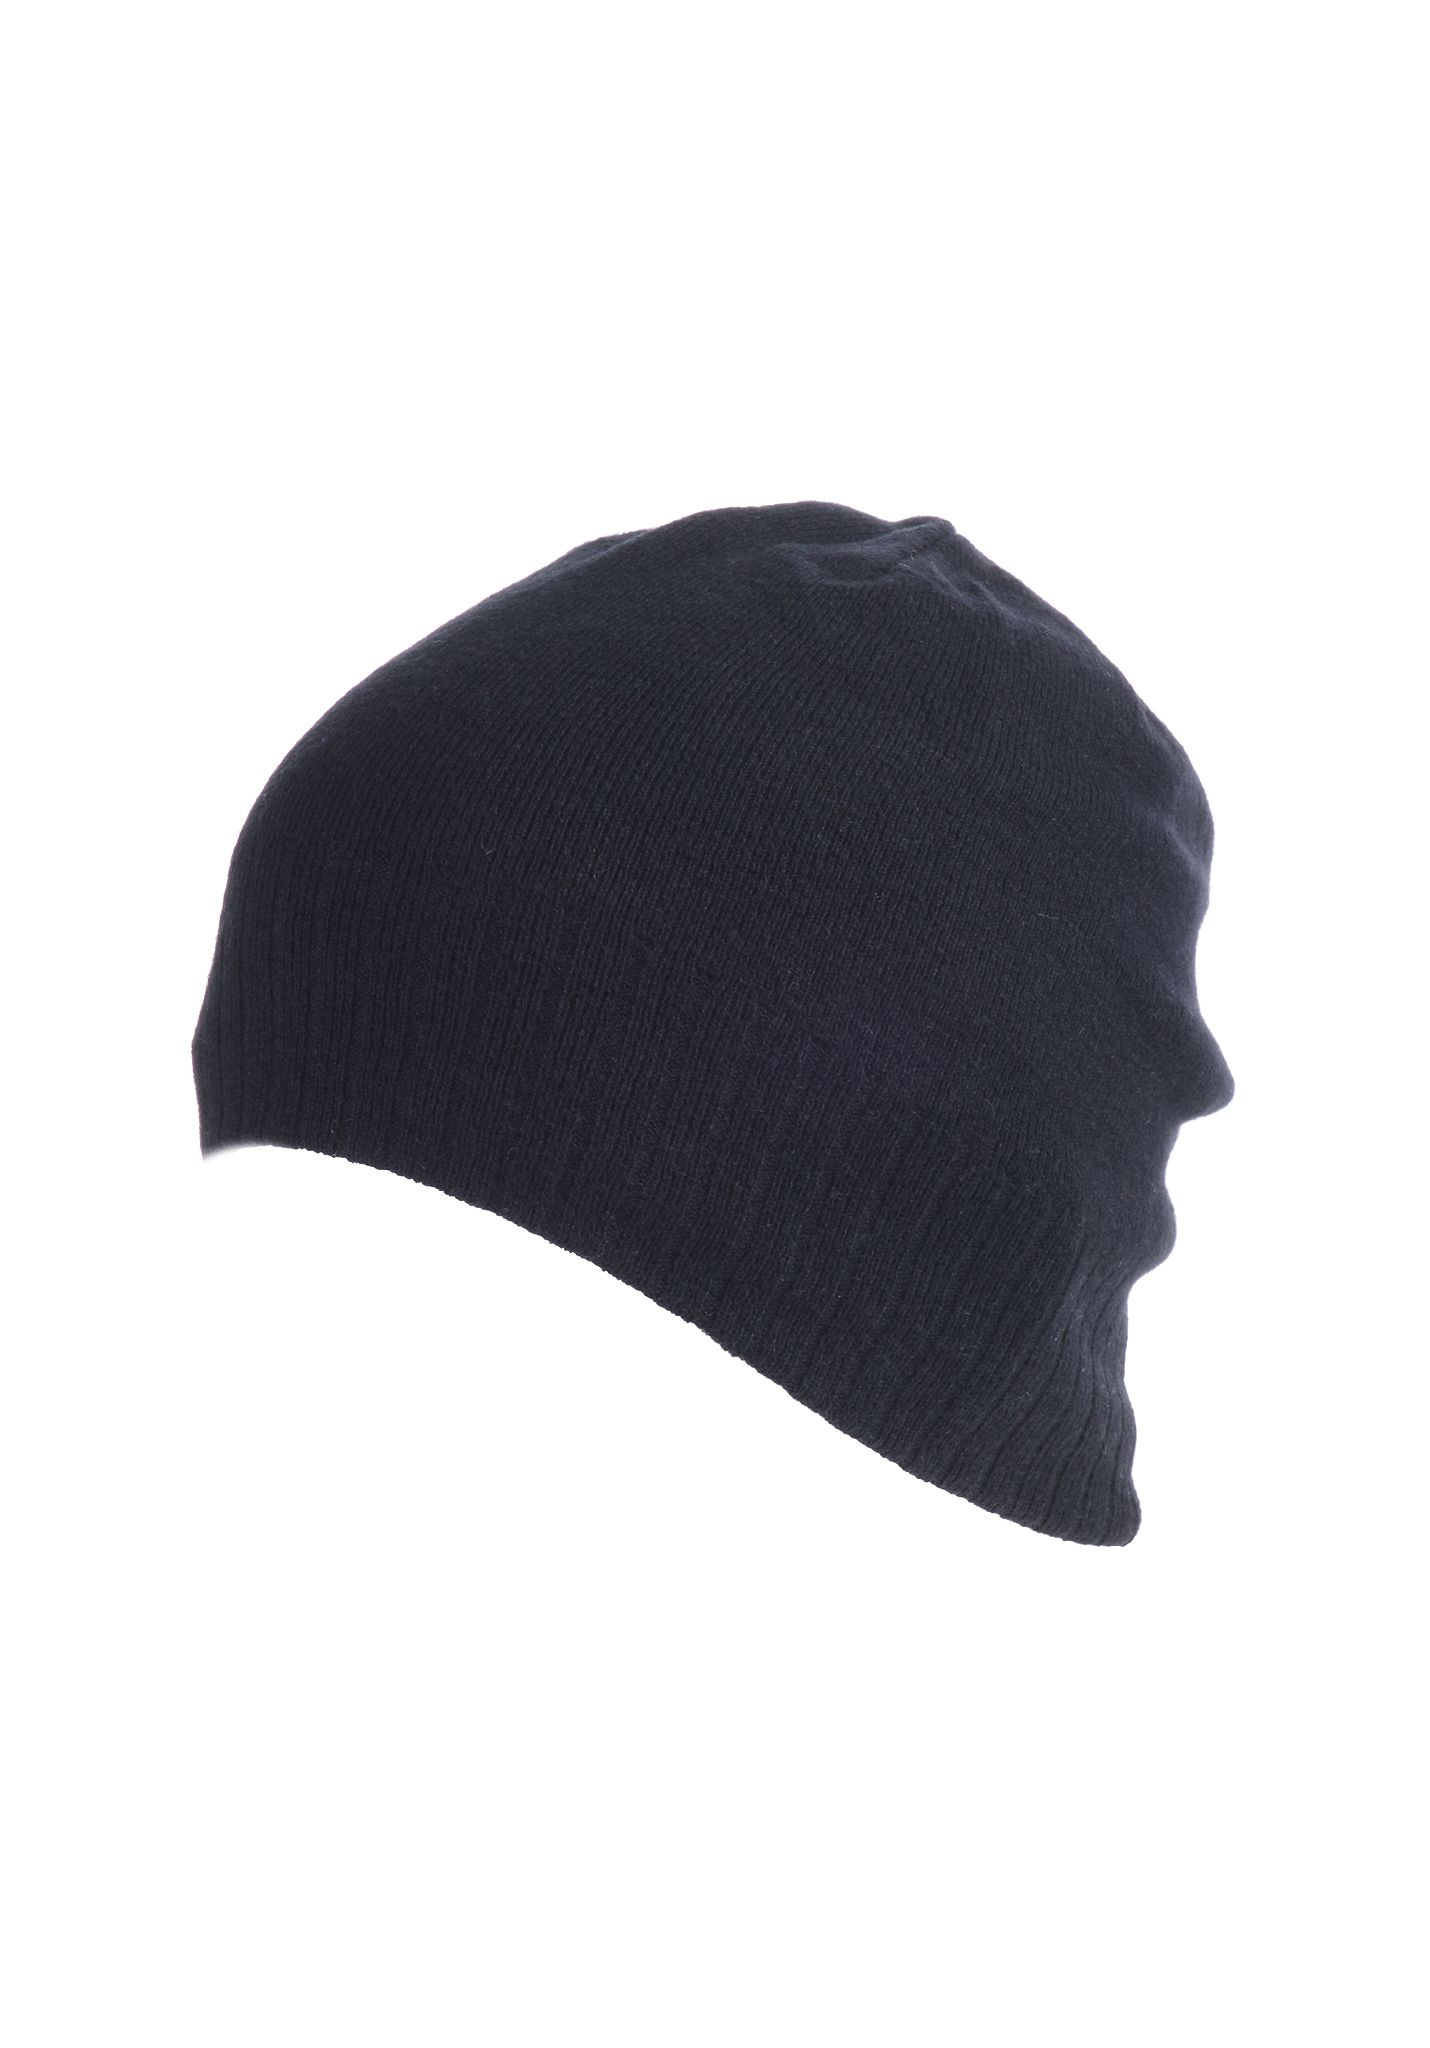 Burton Wool Liner - Beanie for Men - Black - Planet Sports 73b1c03516f